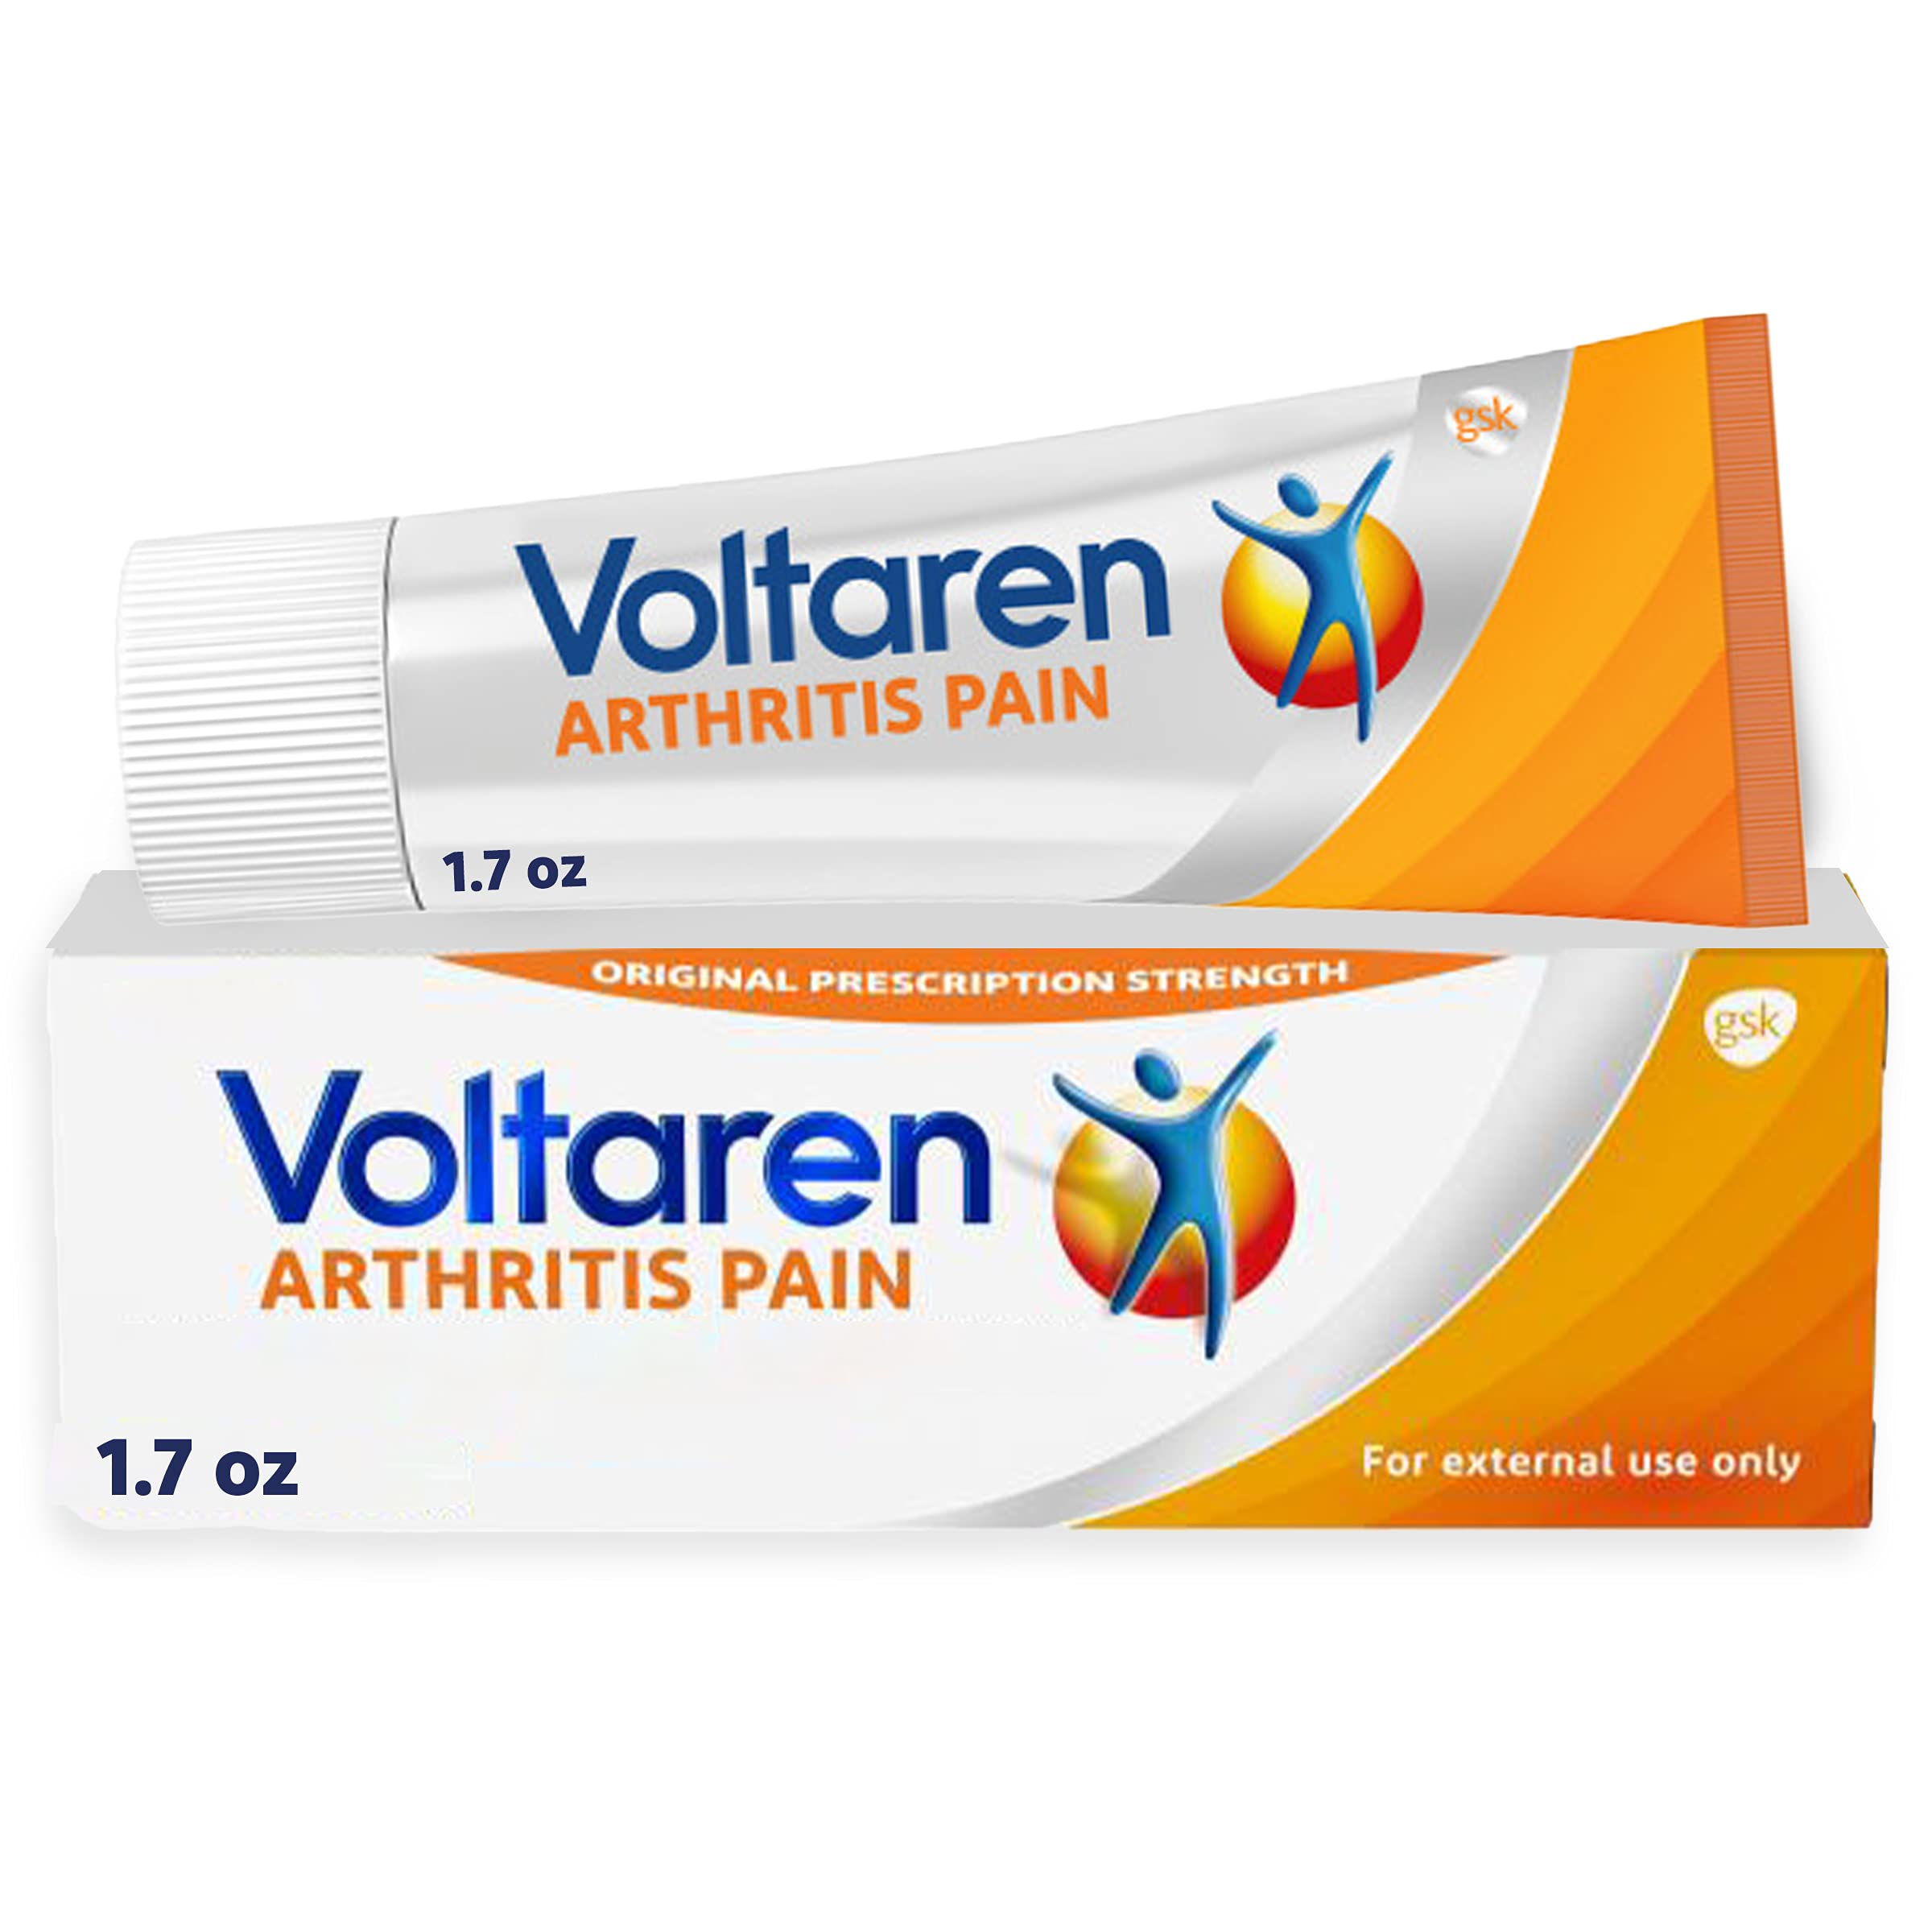 Voltaren Arthritis Pain Gel for Topical Arthritis Pain Relief, #1 Doctor Recommended Topical Pain Relief Brand, No Prescription Needed - 1.7 oz/50 g Tube